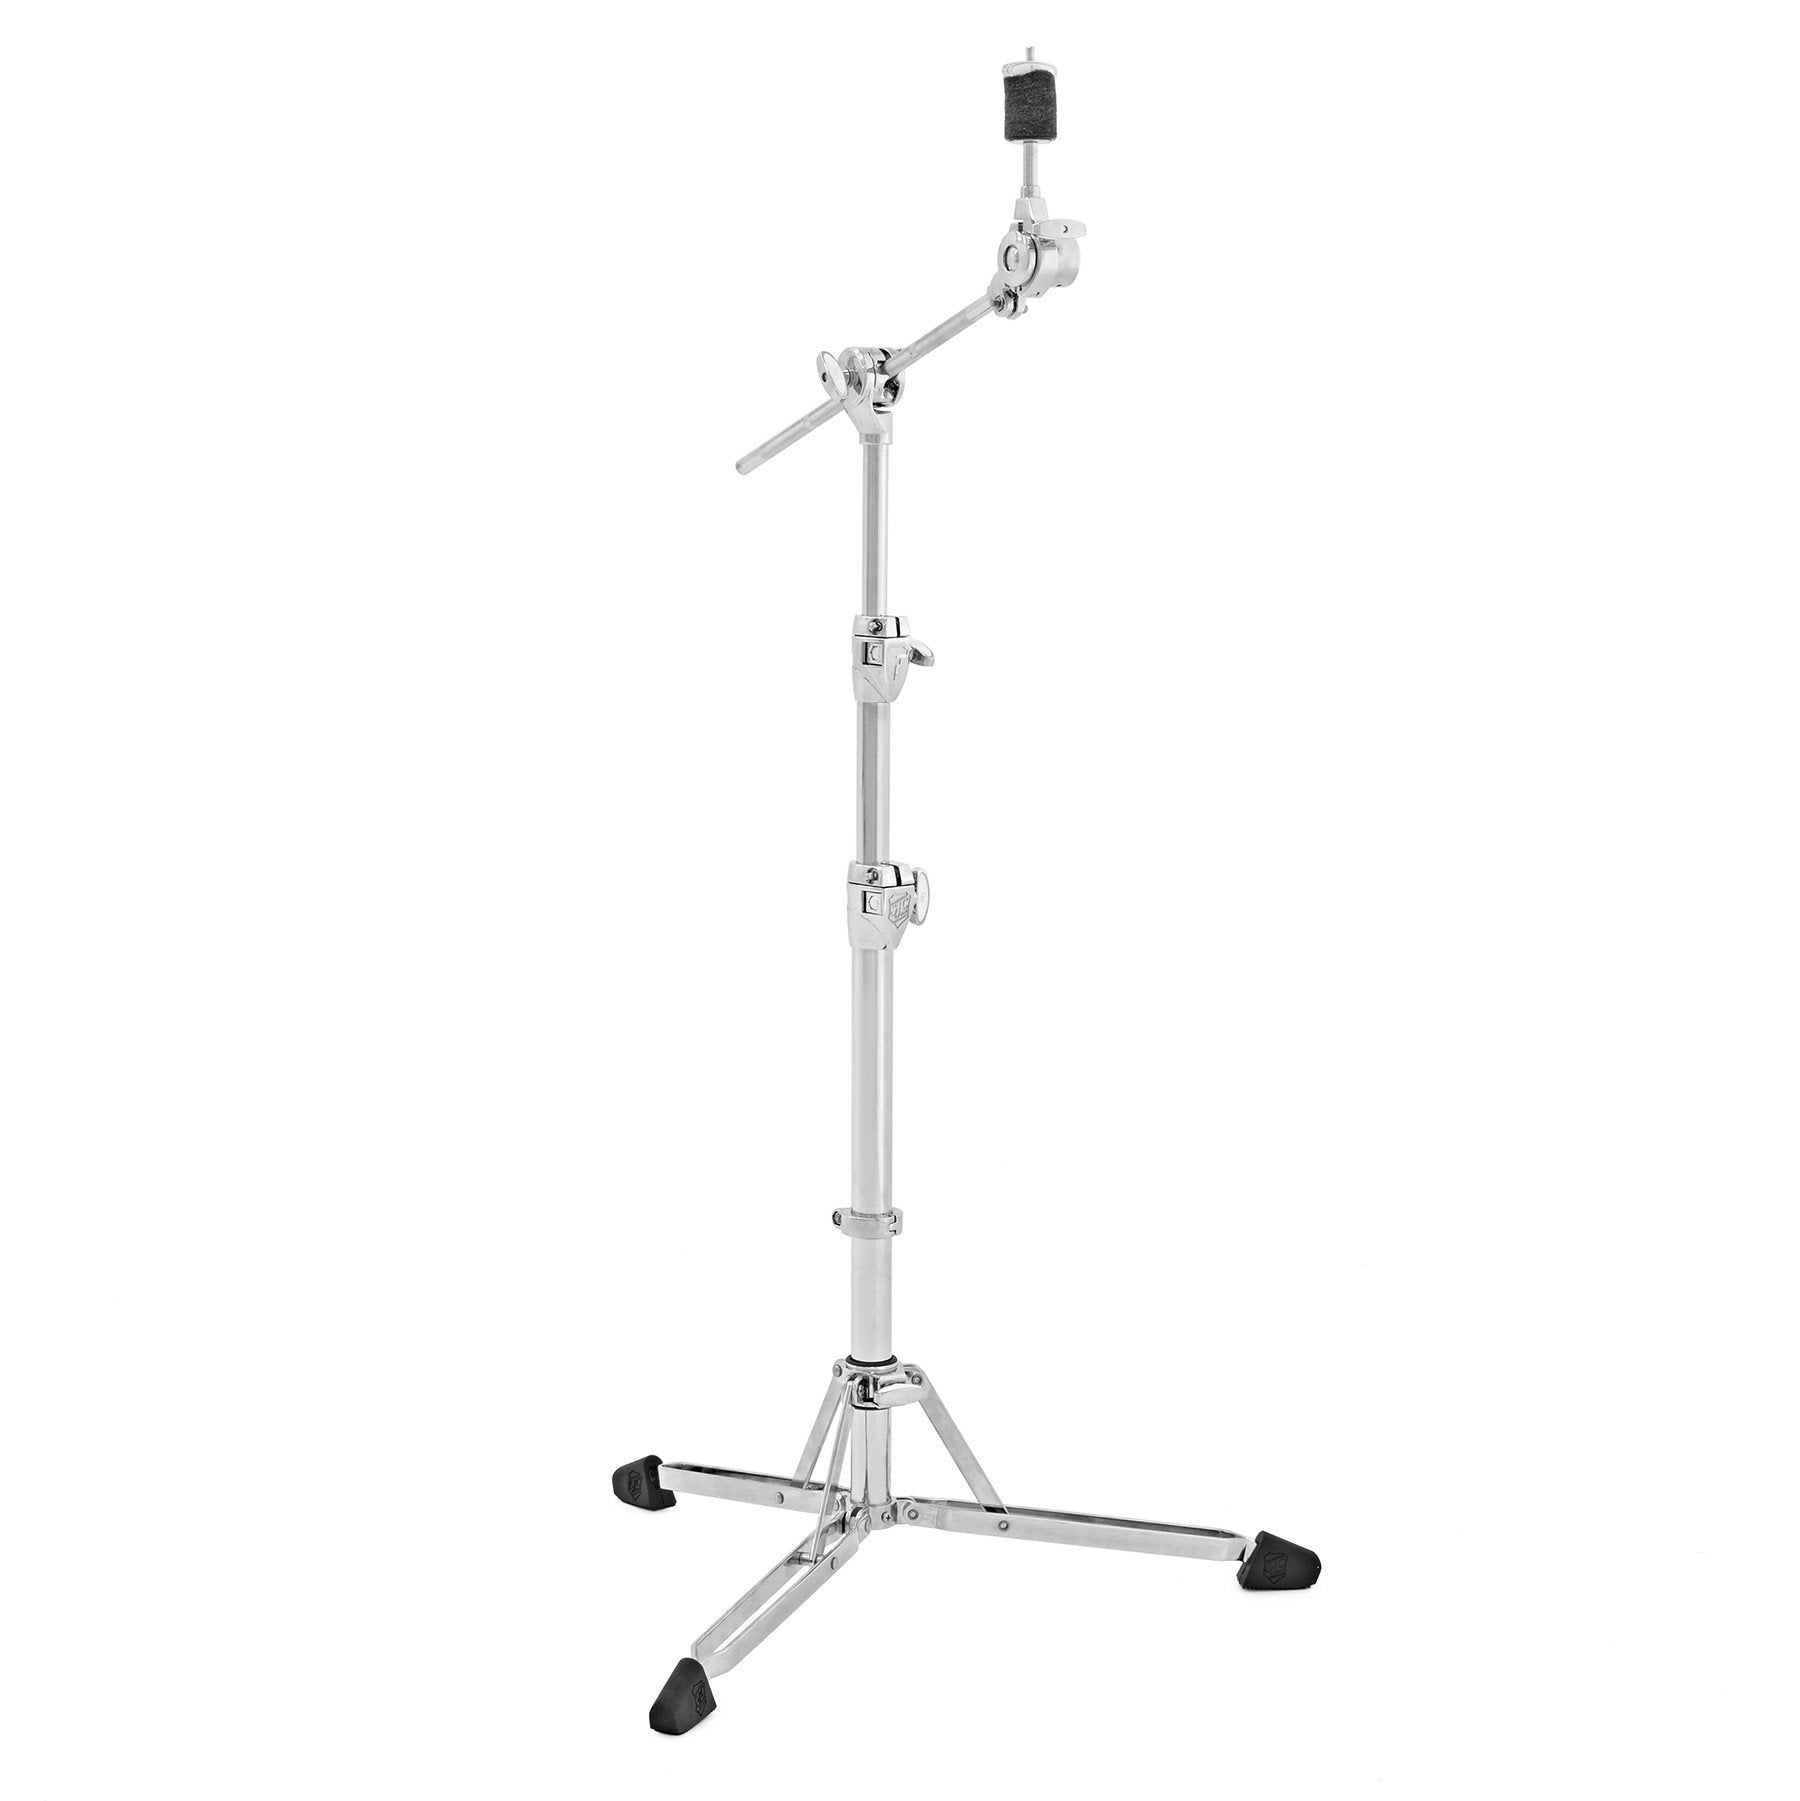 SJC Custom Drums Heavy Duty Double Braced Foundation Hardware Flatline Boom Cymbal Stand